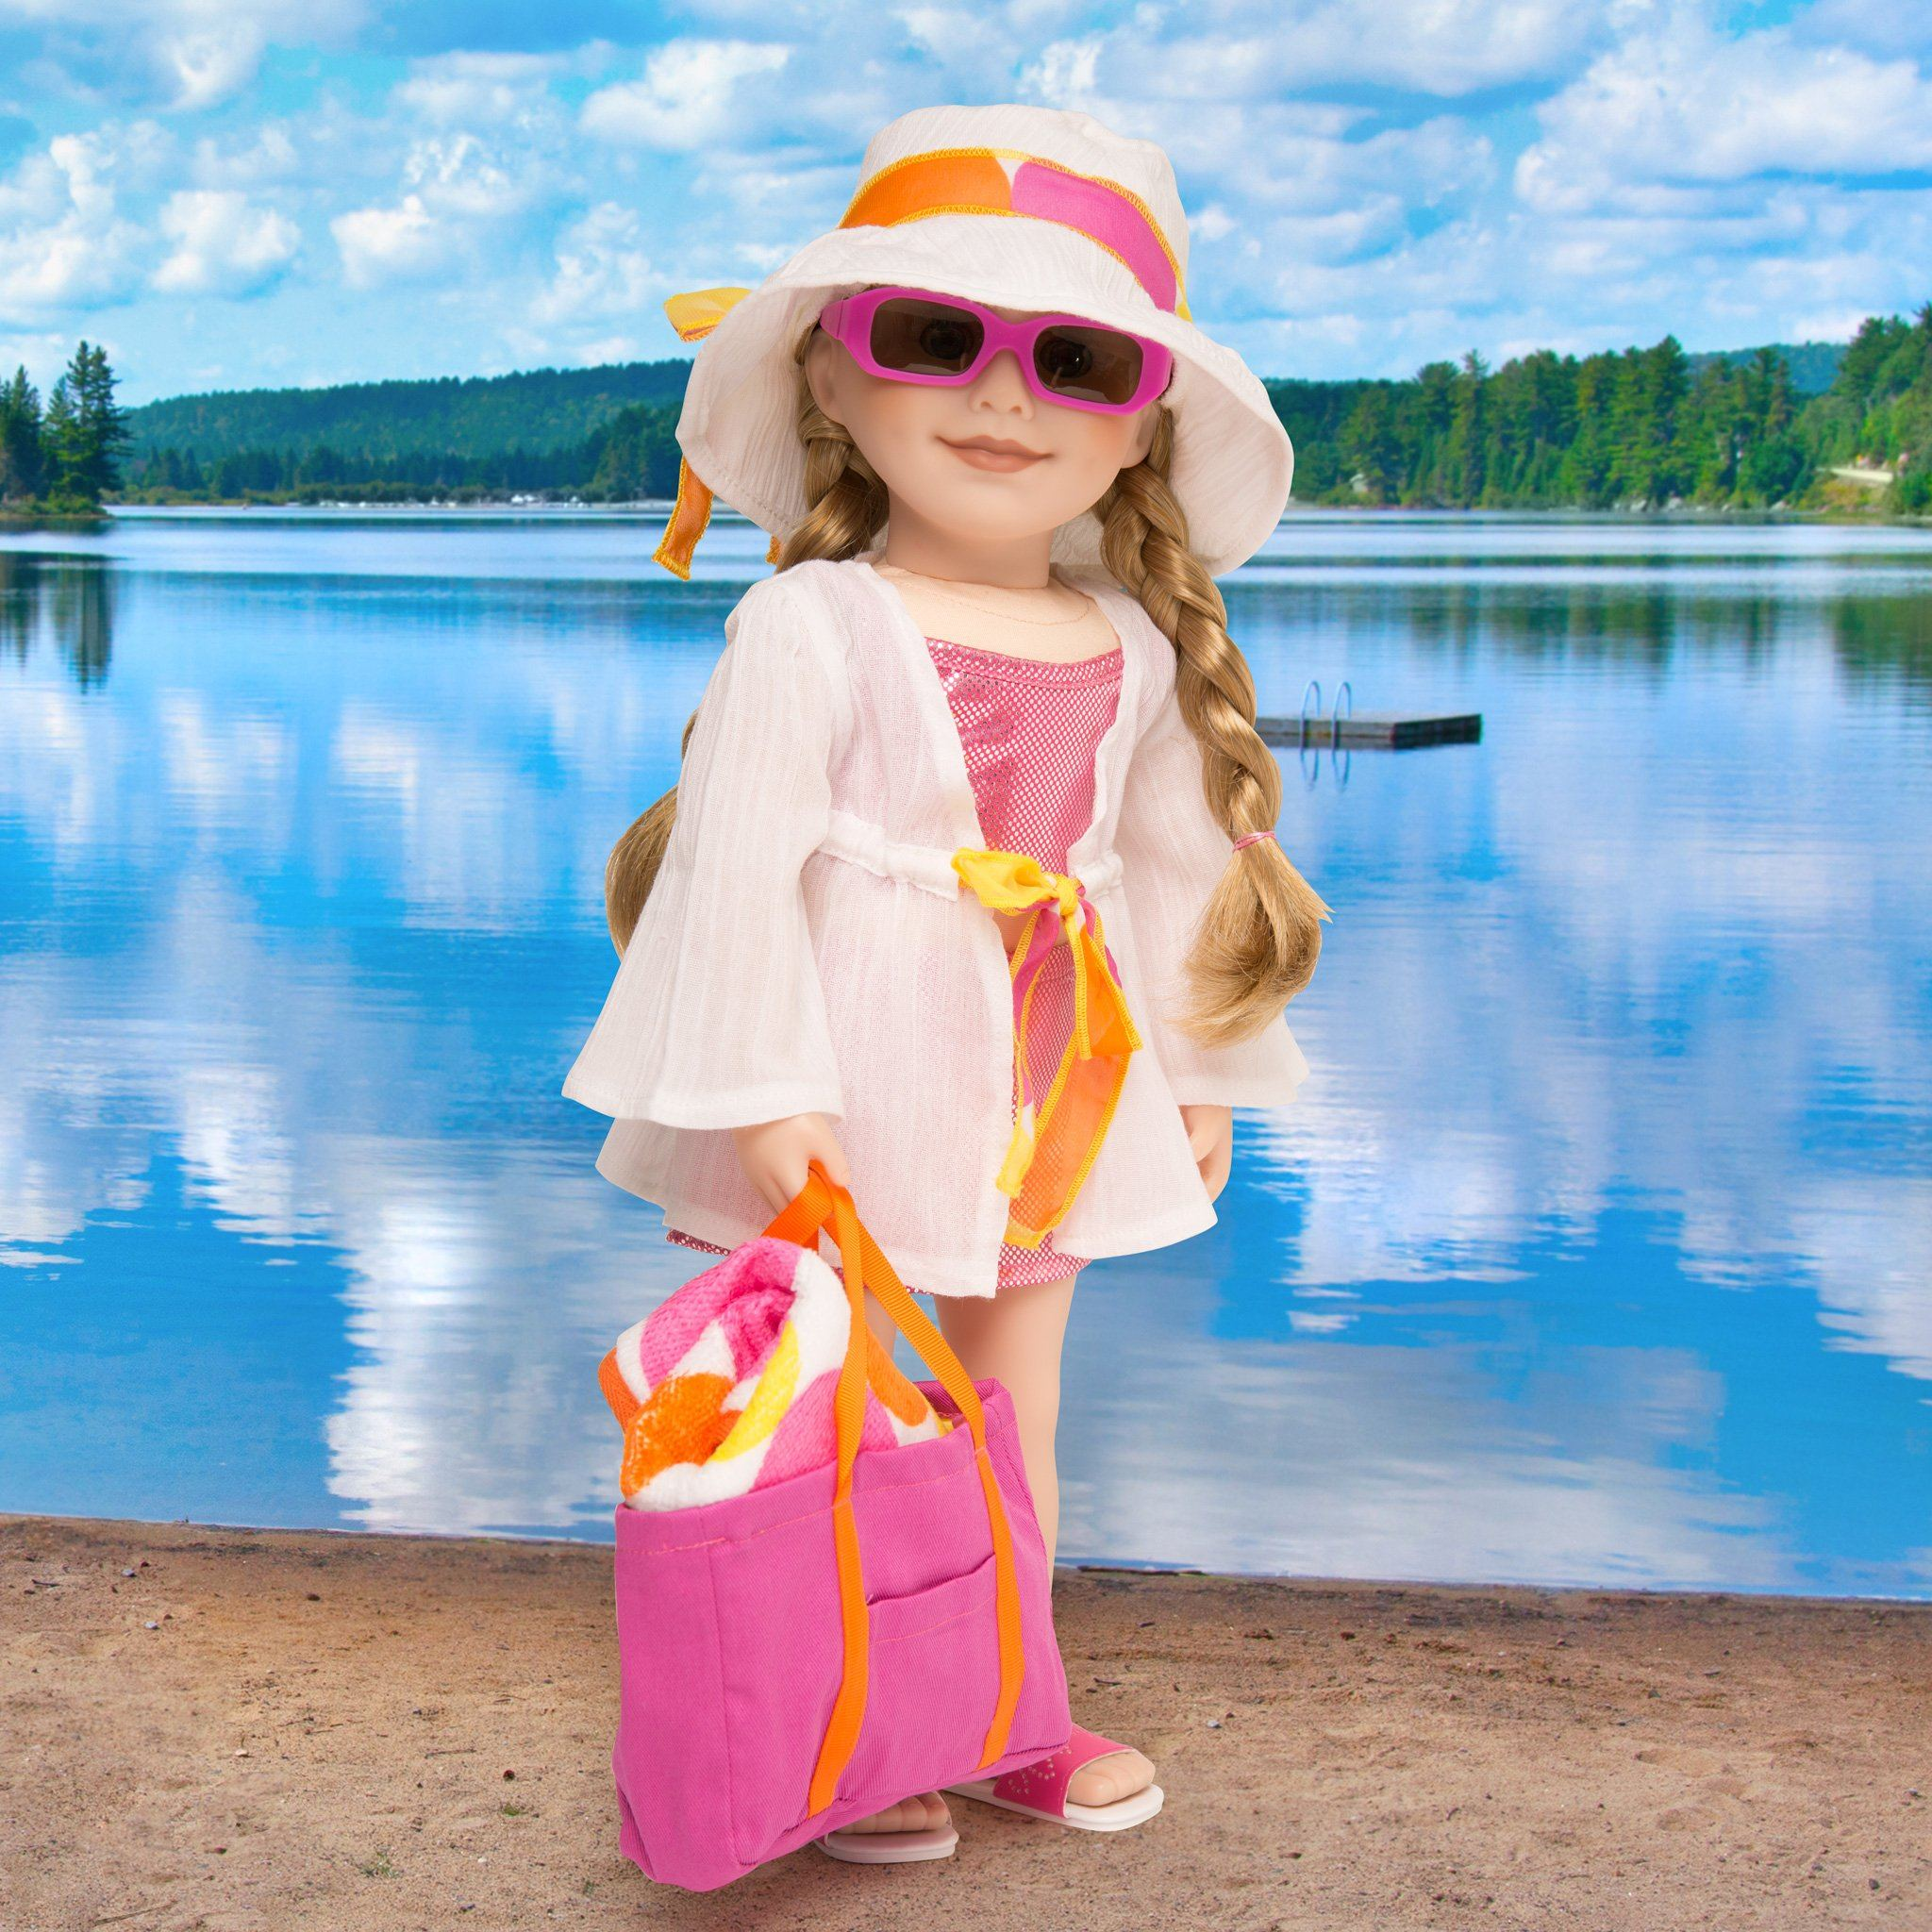 Shoreline Sun white cotton beach cover-up with polka dot tie, white beach hat, pink beach bag, pink sunglasses and polka dot towel fits all 18 inch dolls.